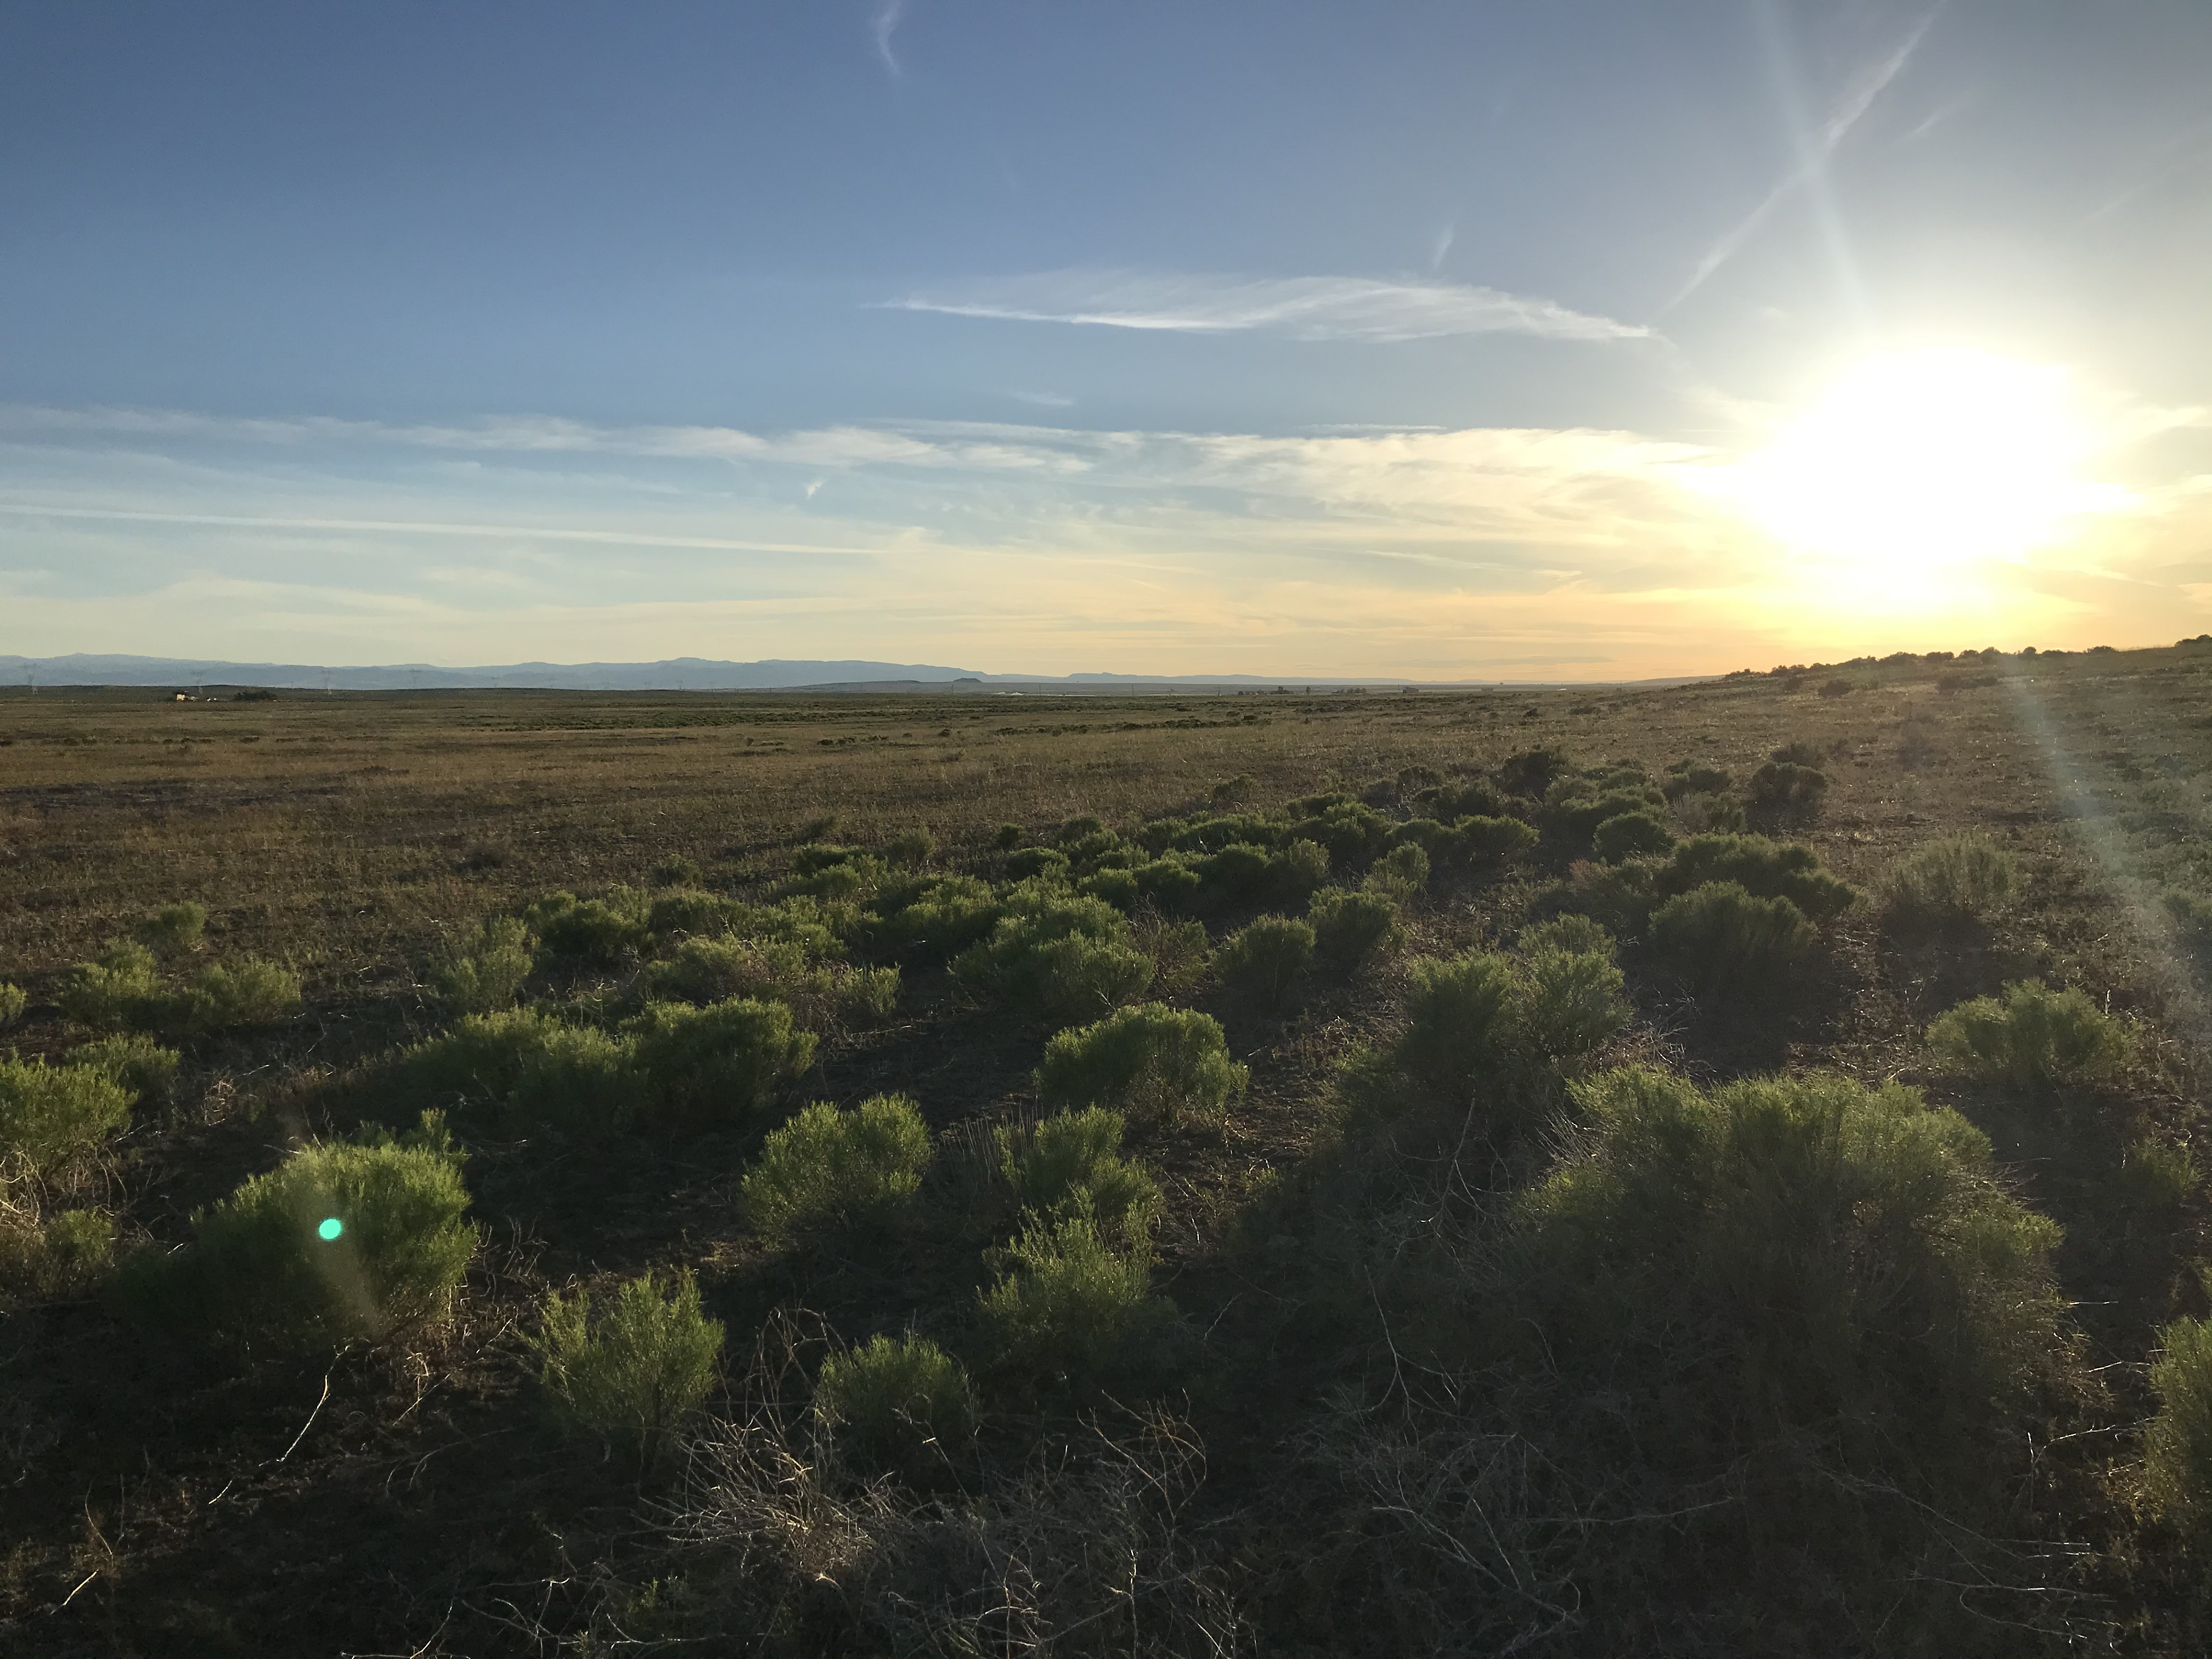 the sun rises over a landscape with rabbit brush shrubs and grasses